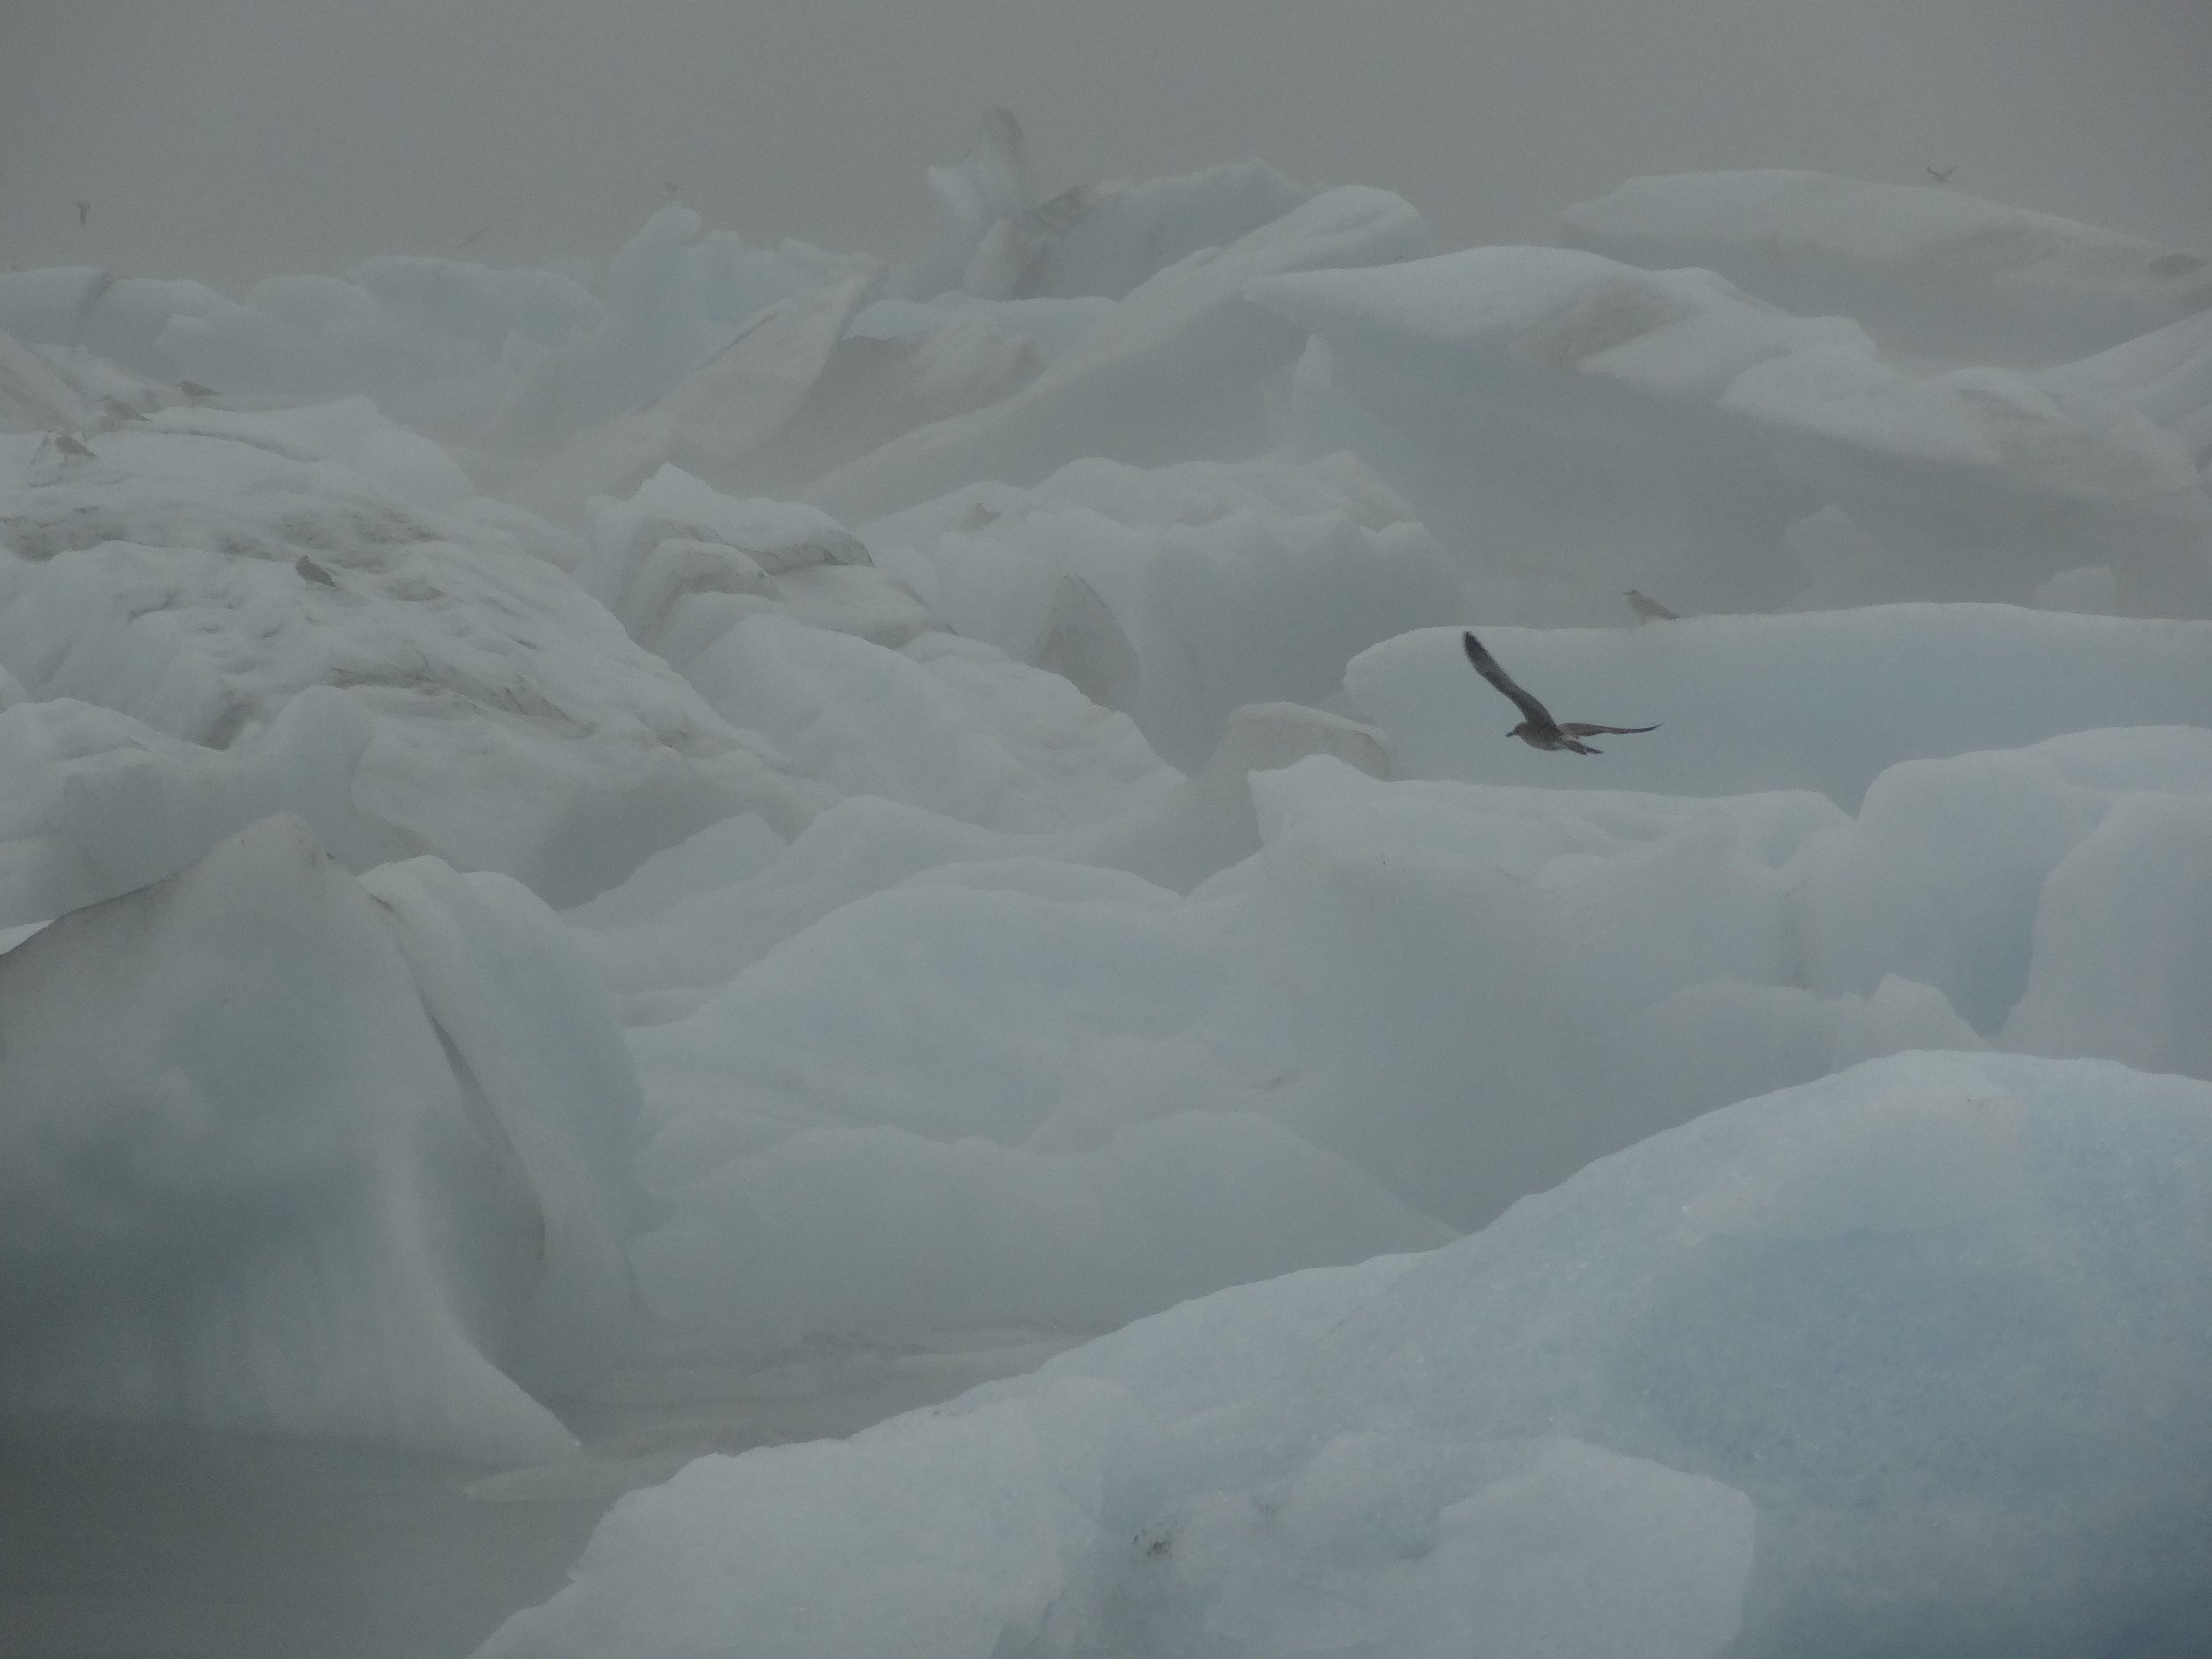 Gull over ice, southern Iceland.